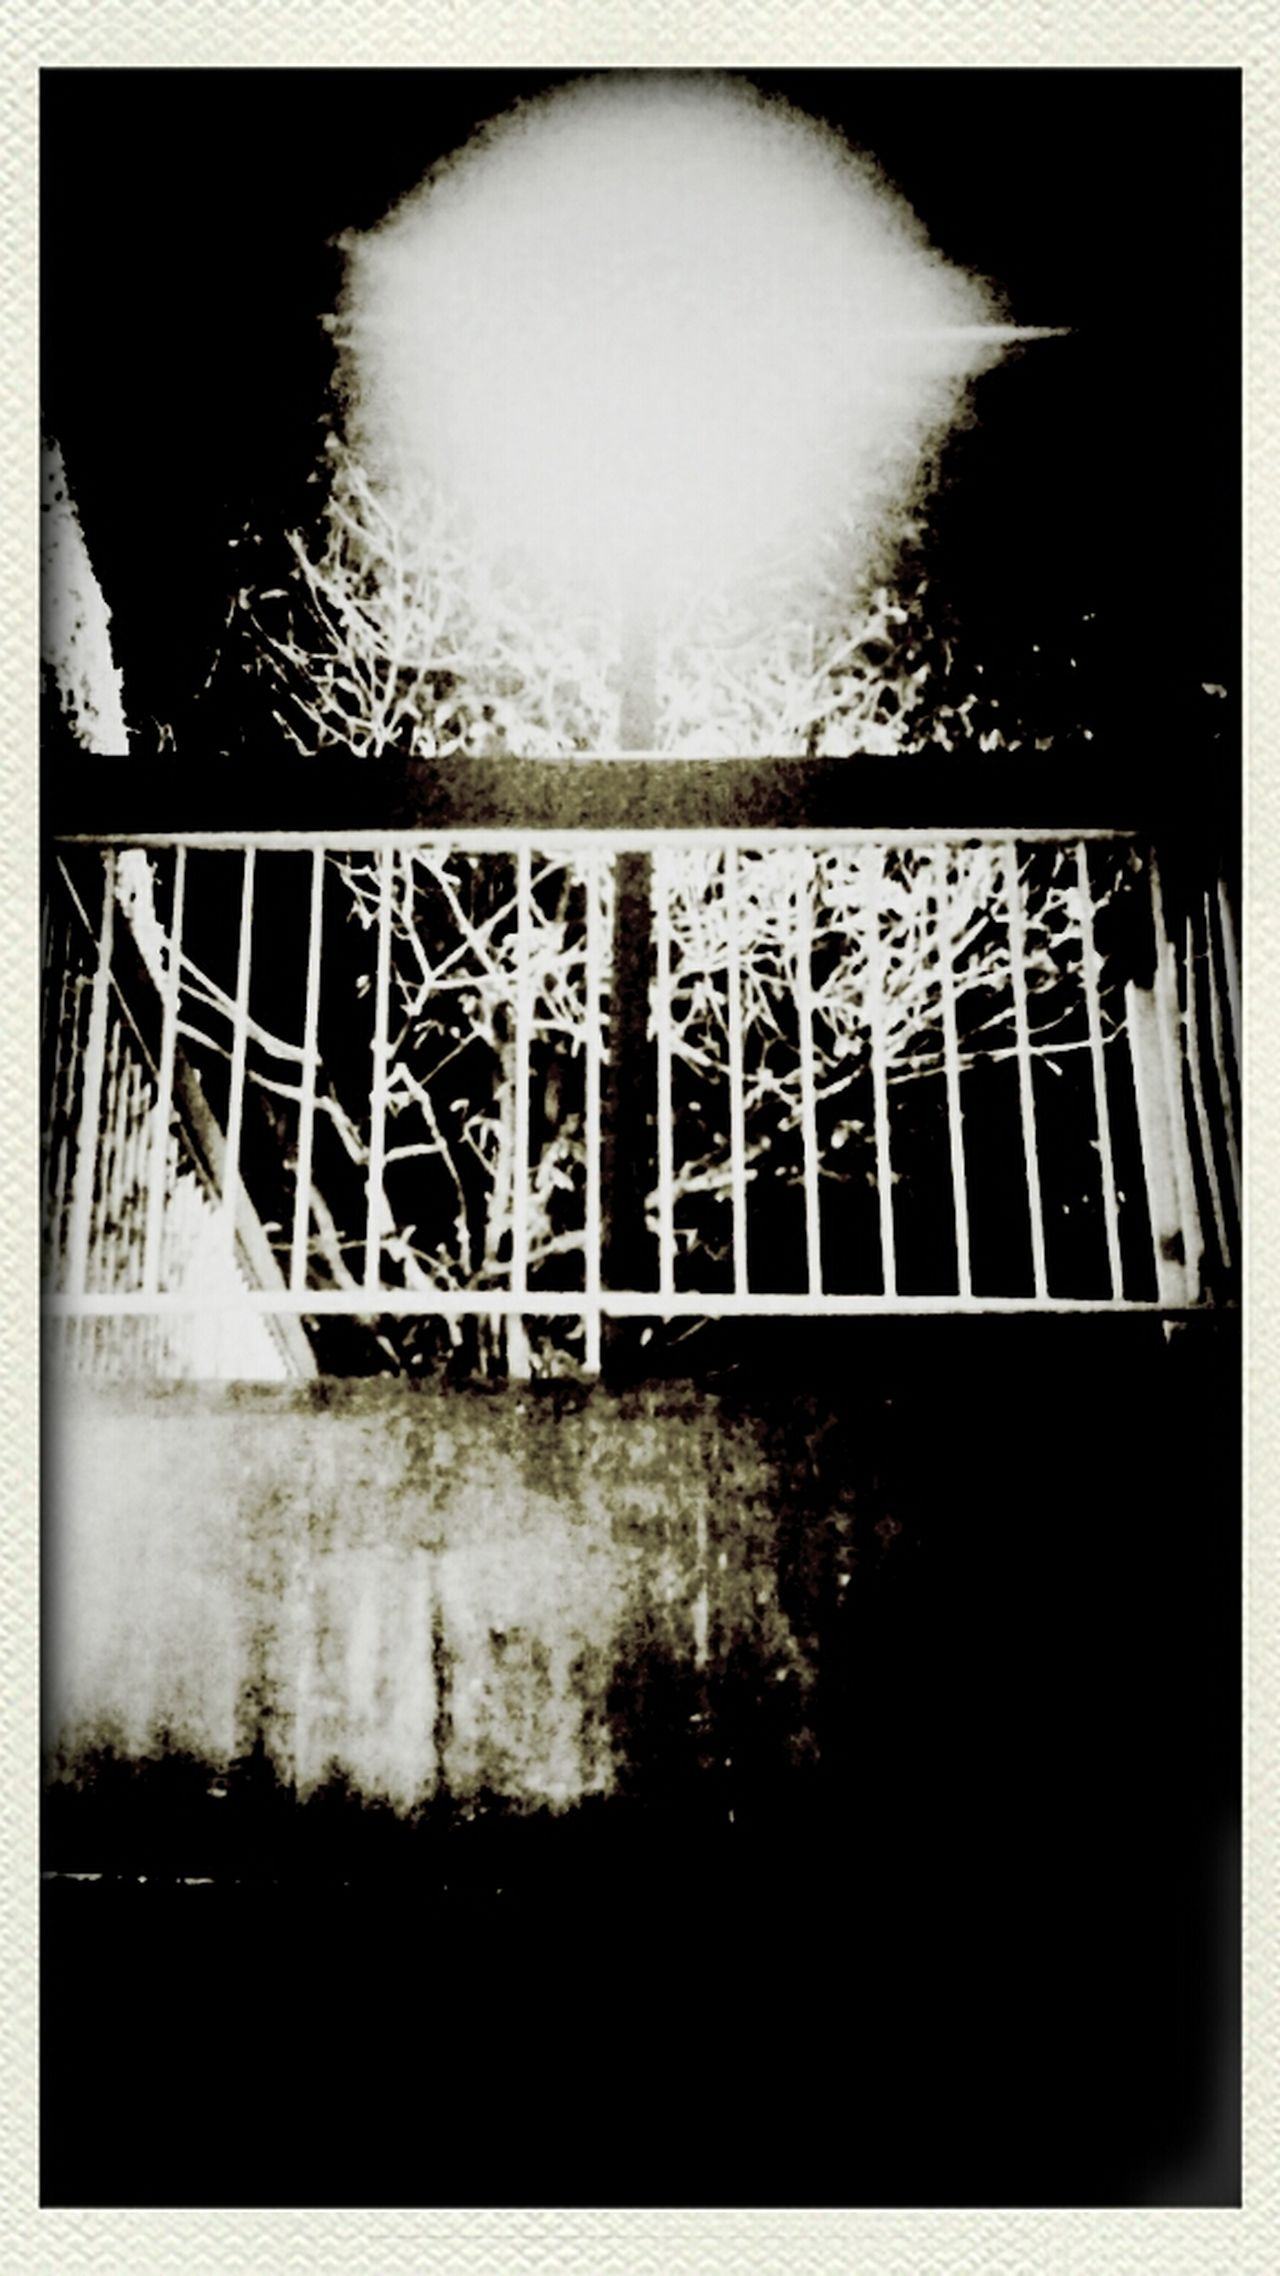 Black And White Andrography Phoneography Vignette For Android Burnaby Harsh White And Brown?